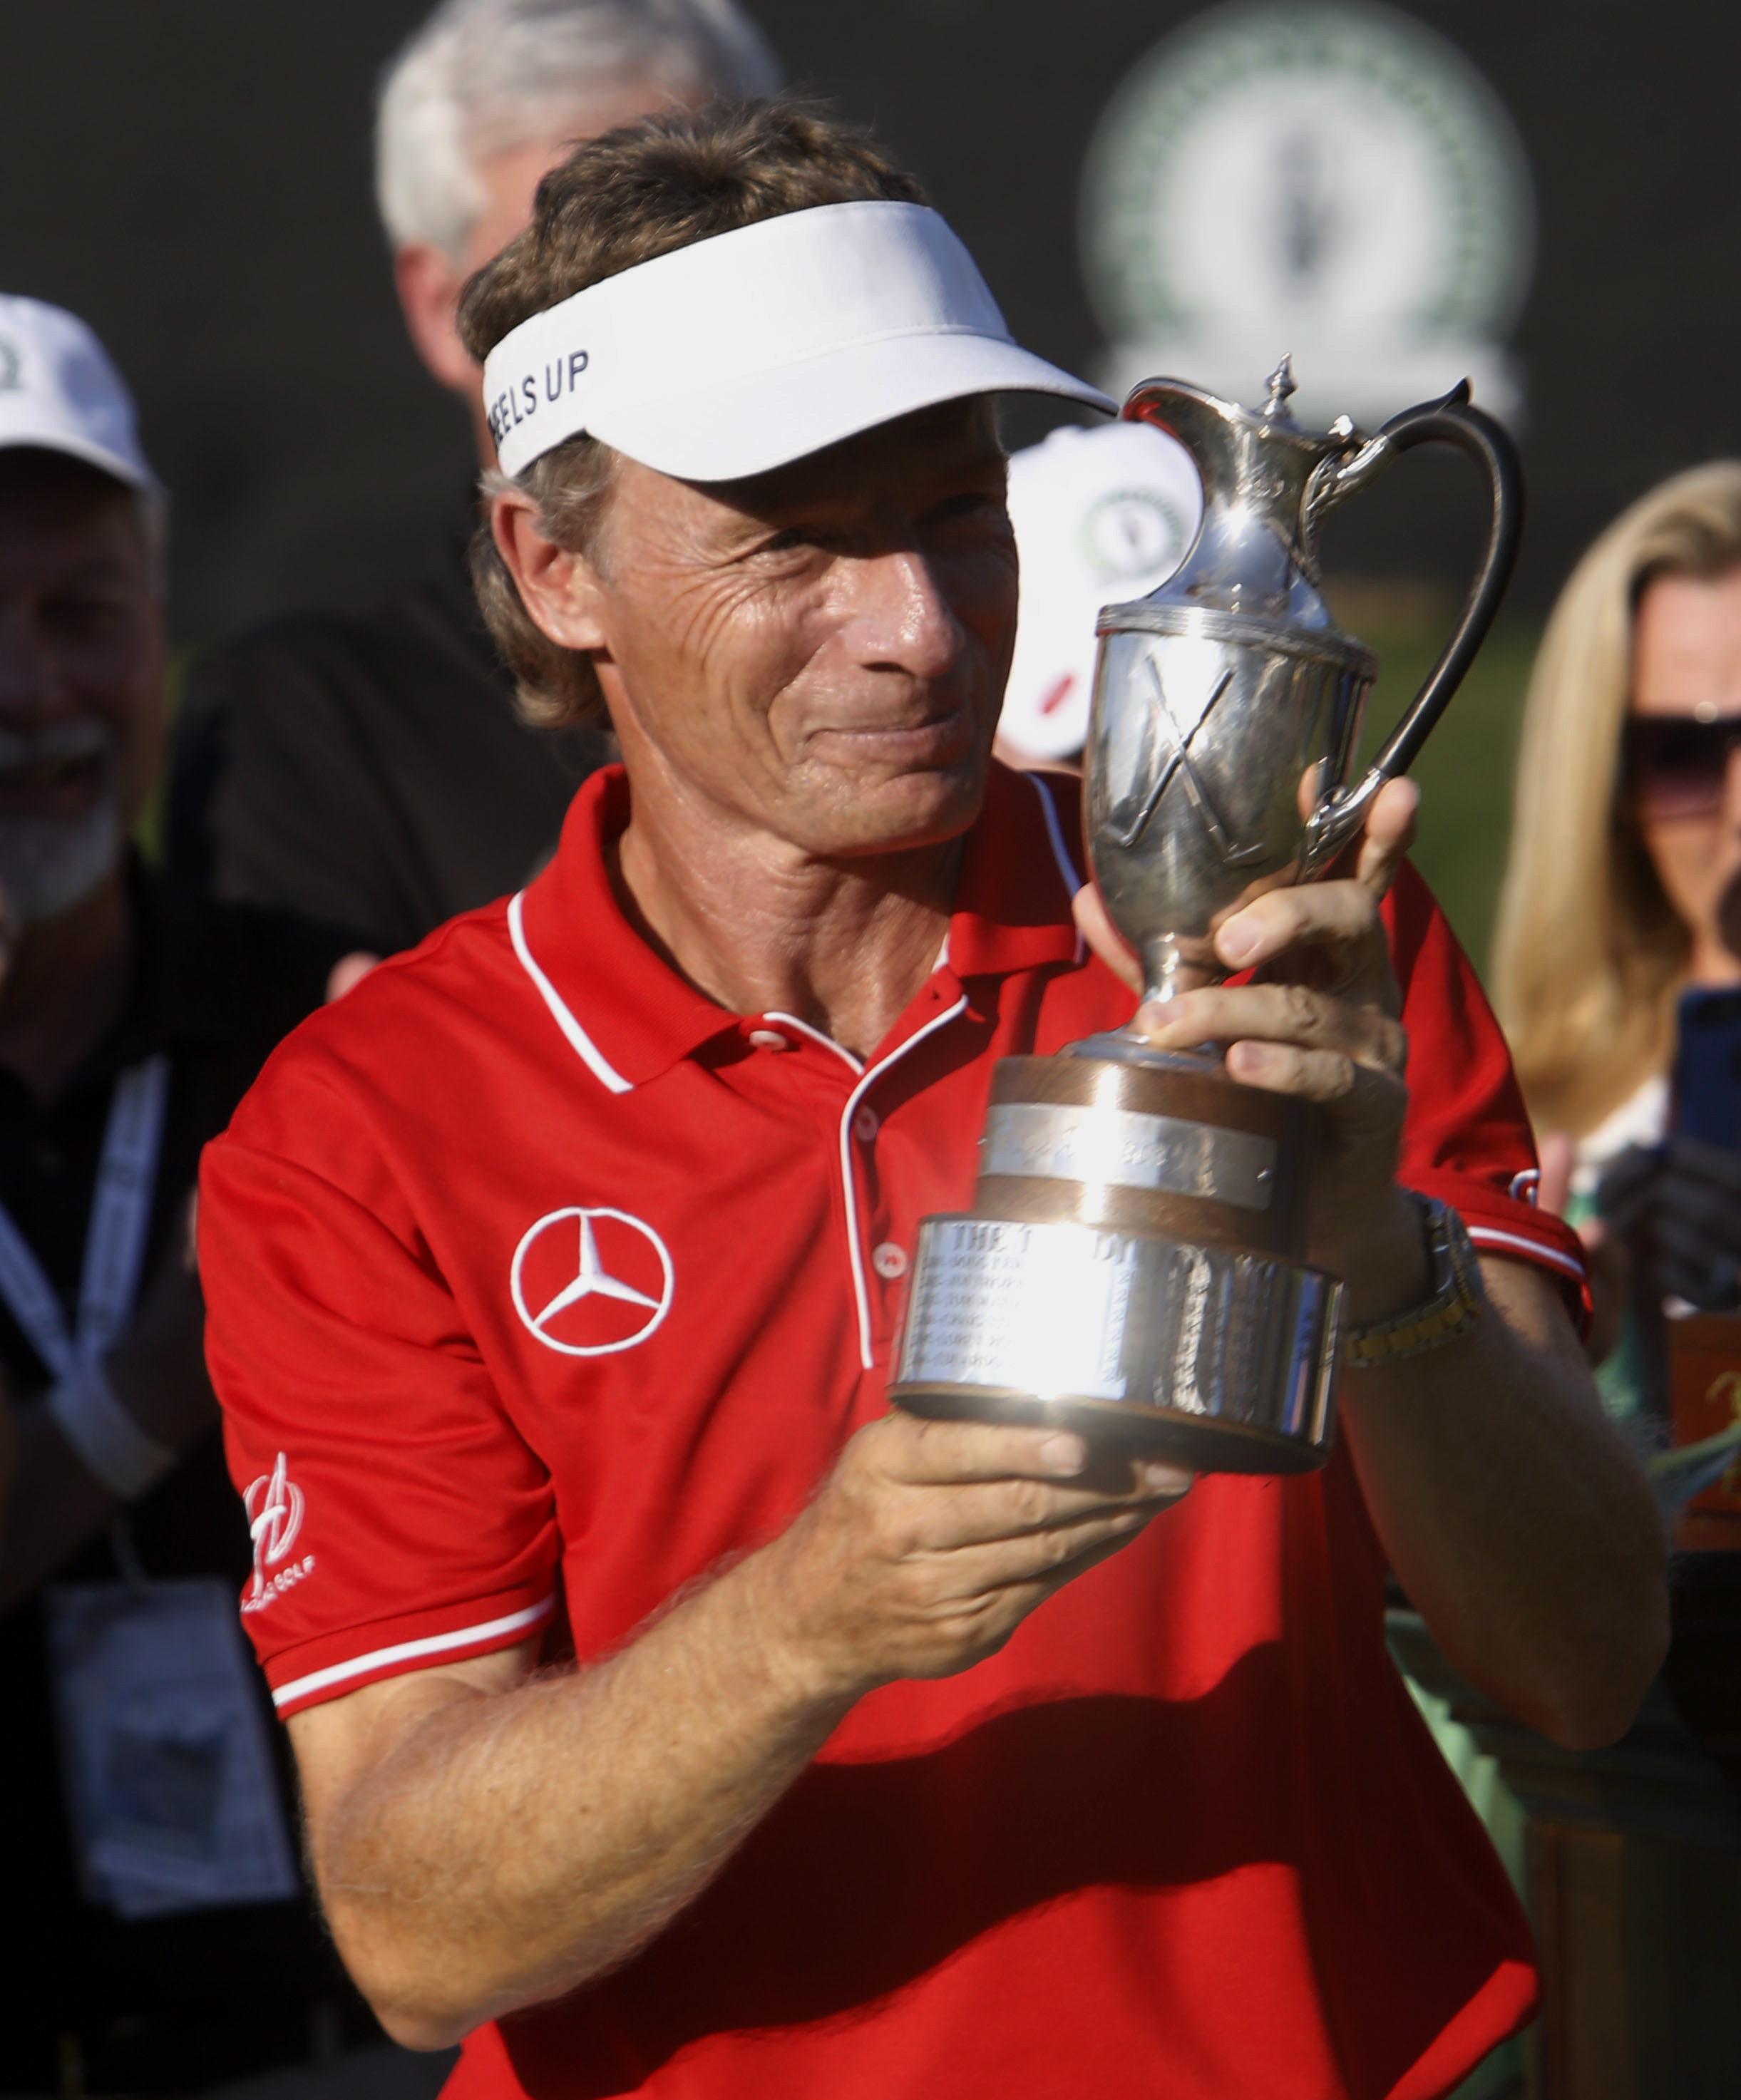 Bernhard Langer, of Germany, poses with the championship trophy after winning the PGA Regions Tradition at the Greystone Golf & Country Club in Birmingham, Ala., Sunday, May 22, 2016. (Hal Yeager/AL.com via AP) MANDATORY CREDIT